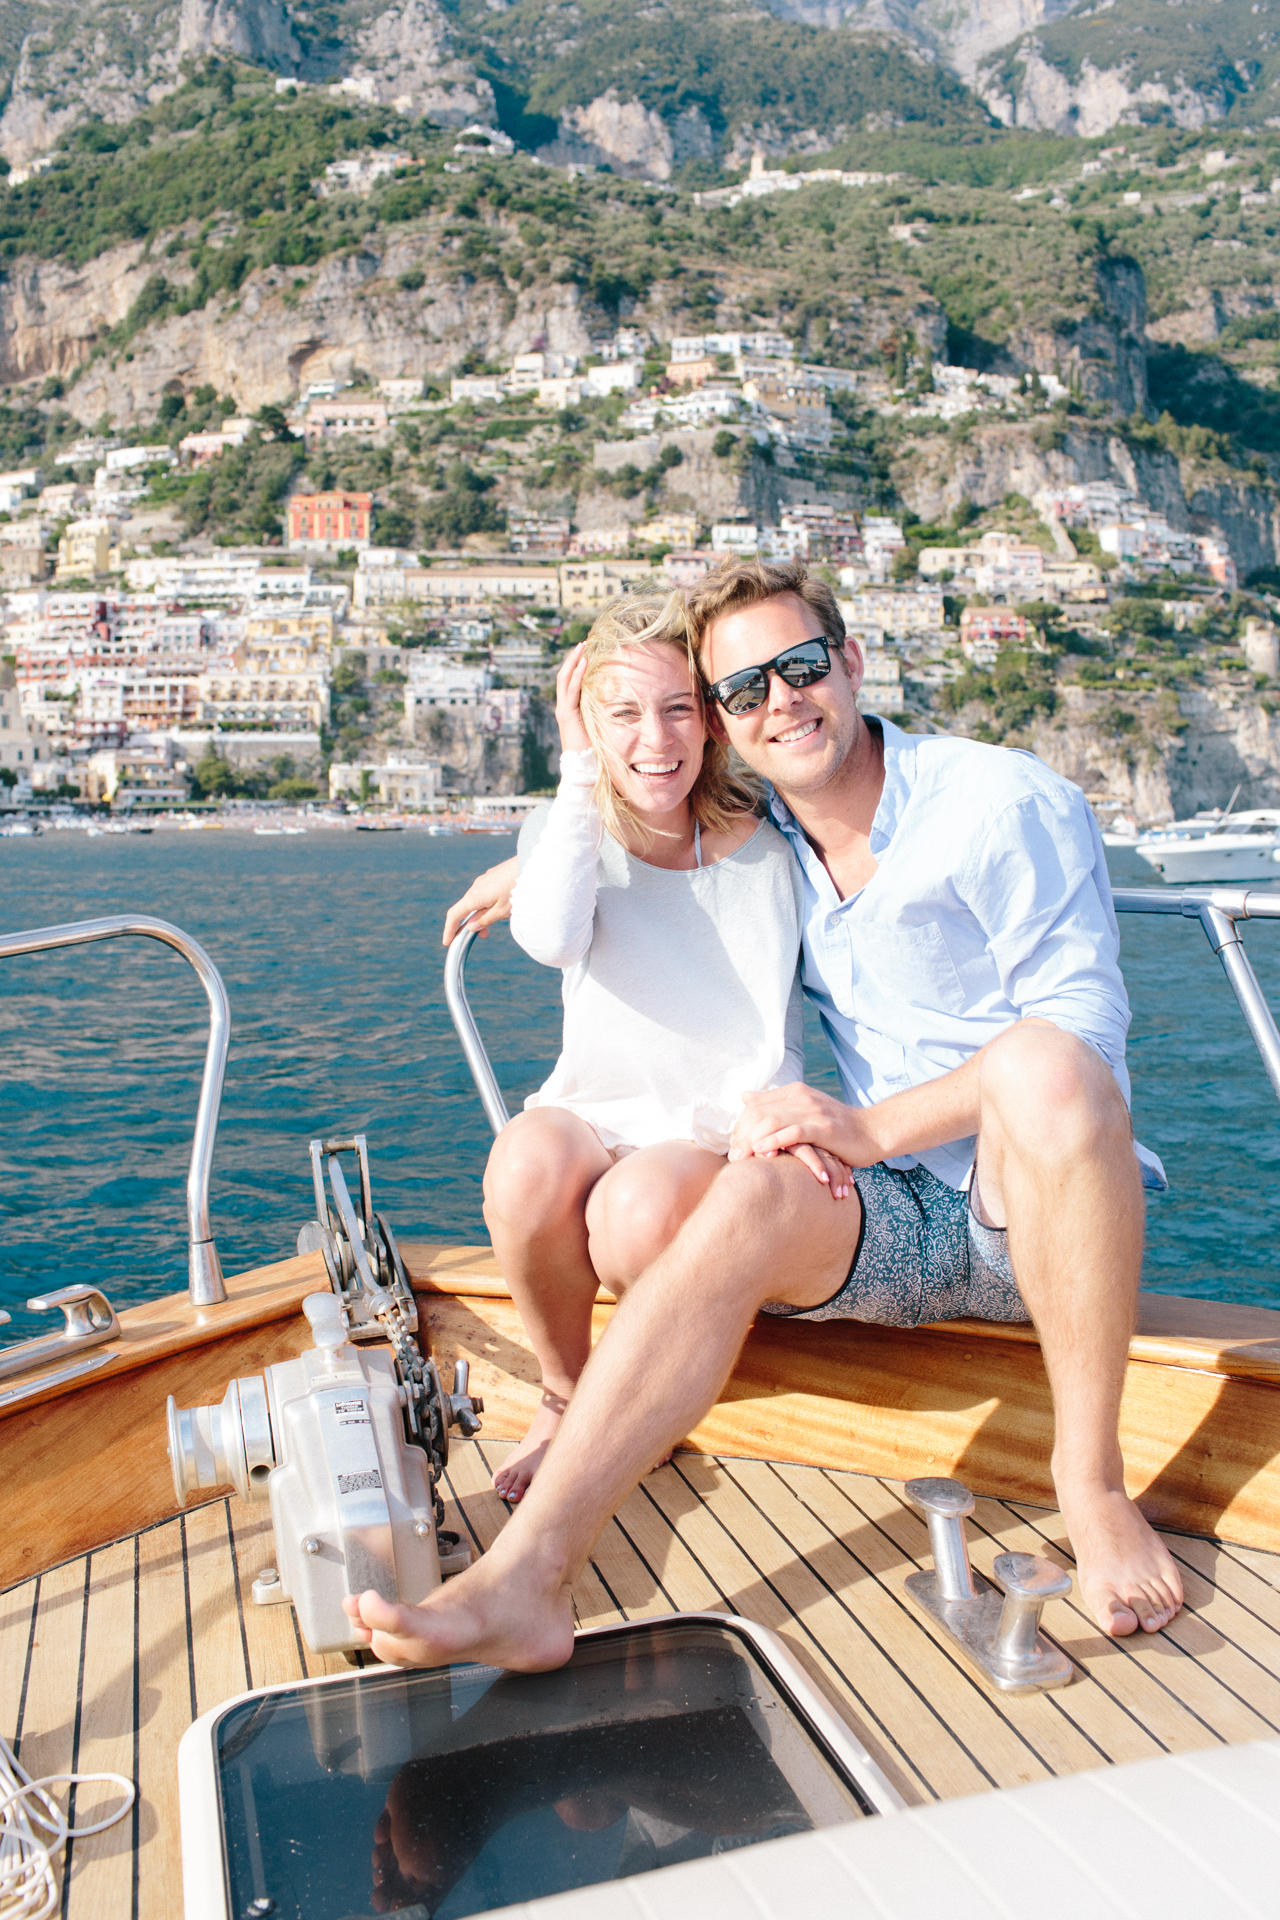 italy_trip_withmylove_103.JPG